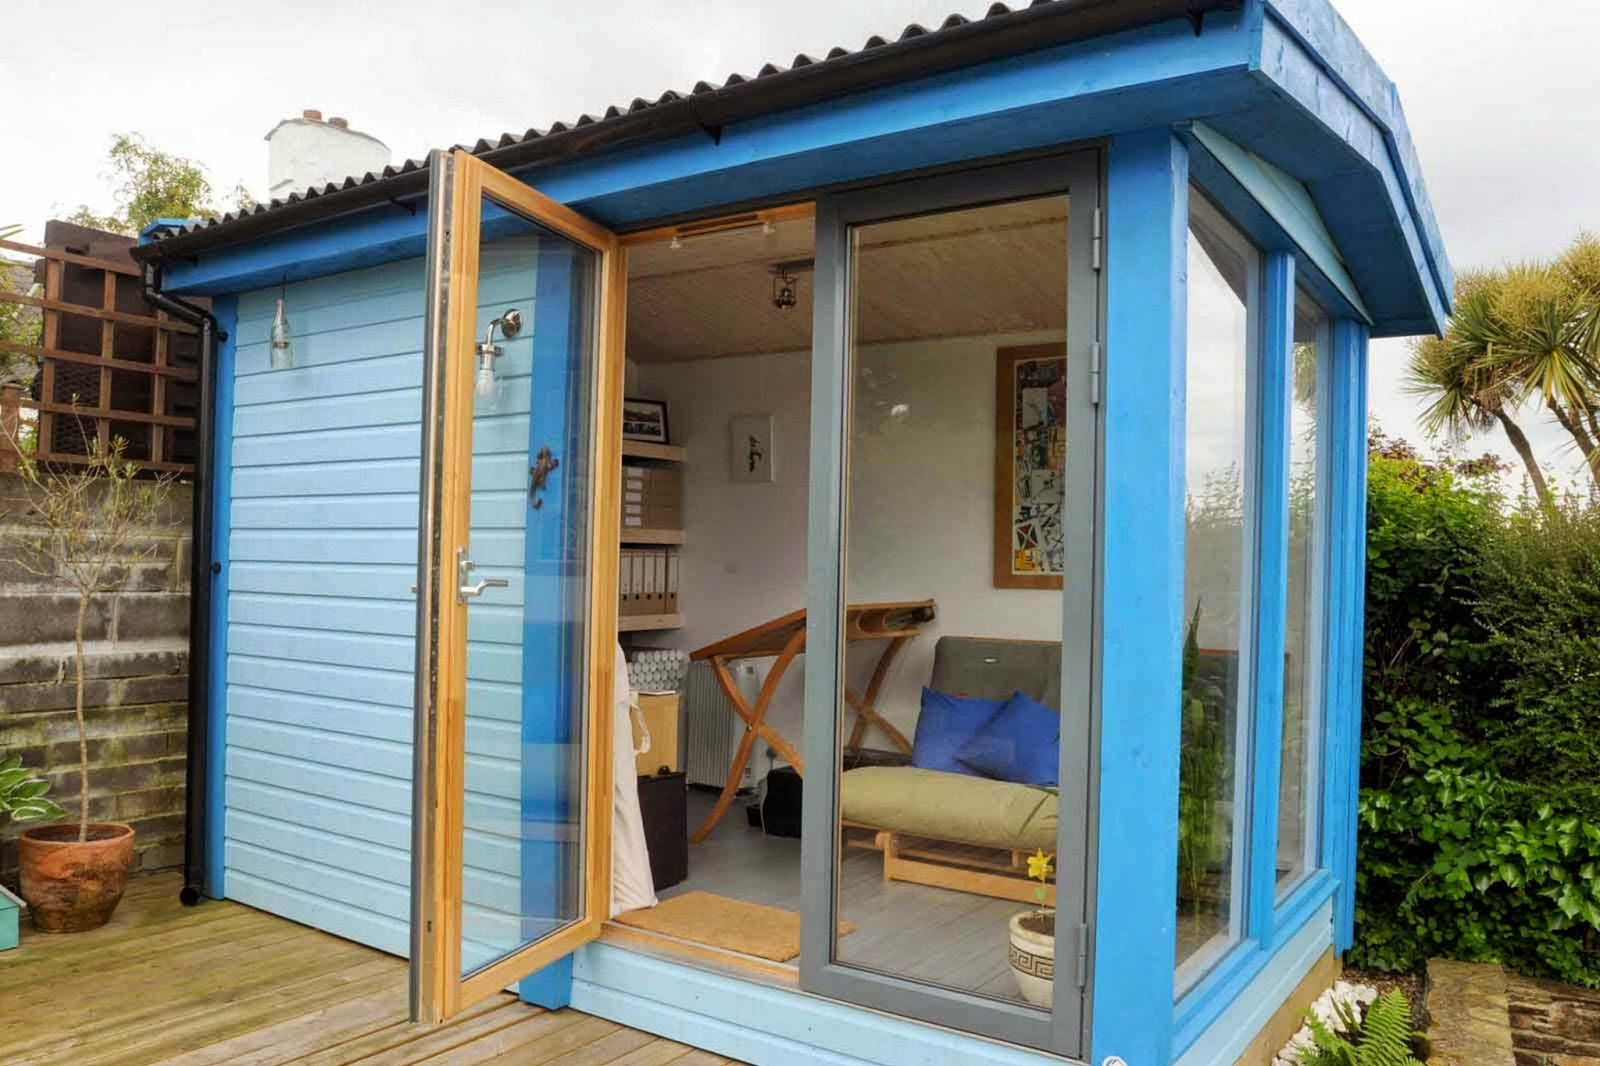 Views from the bike shed: Shed of the year